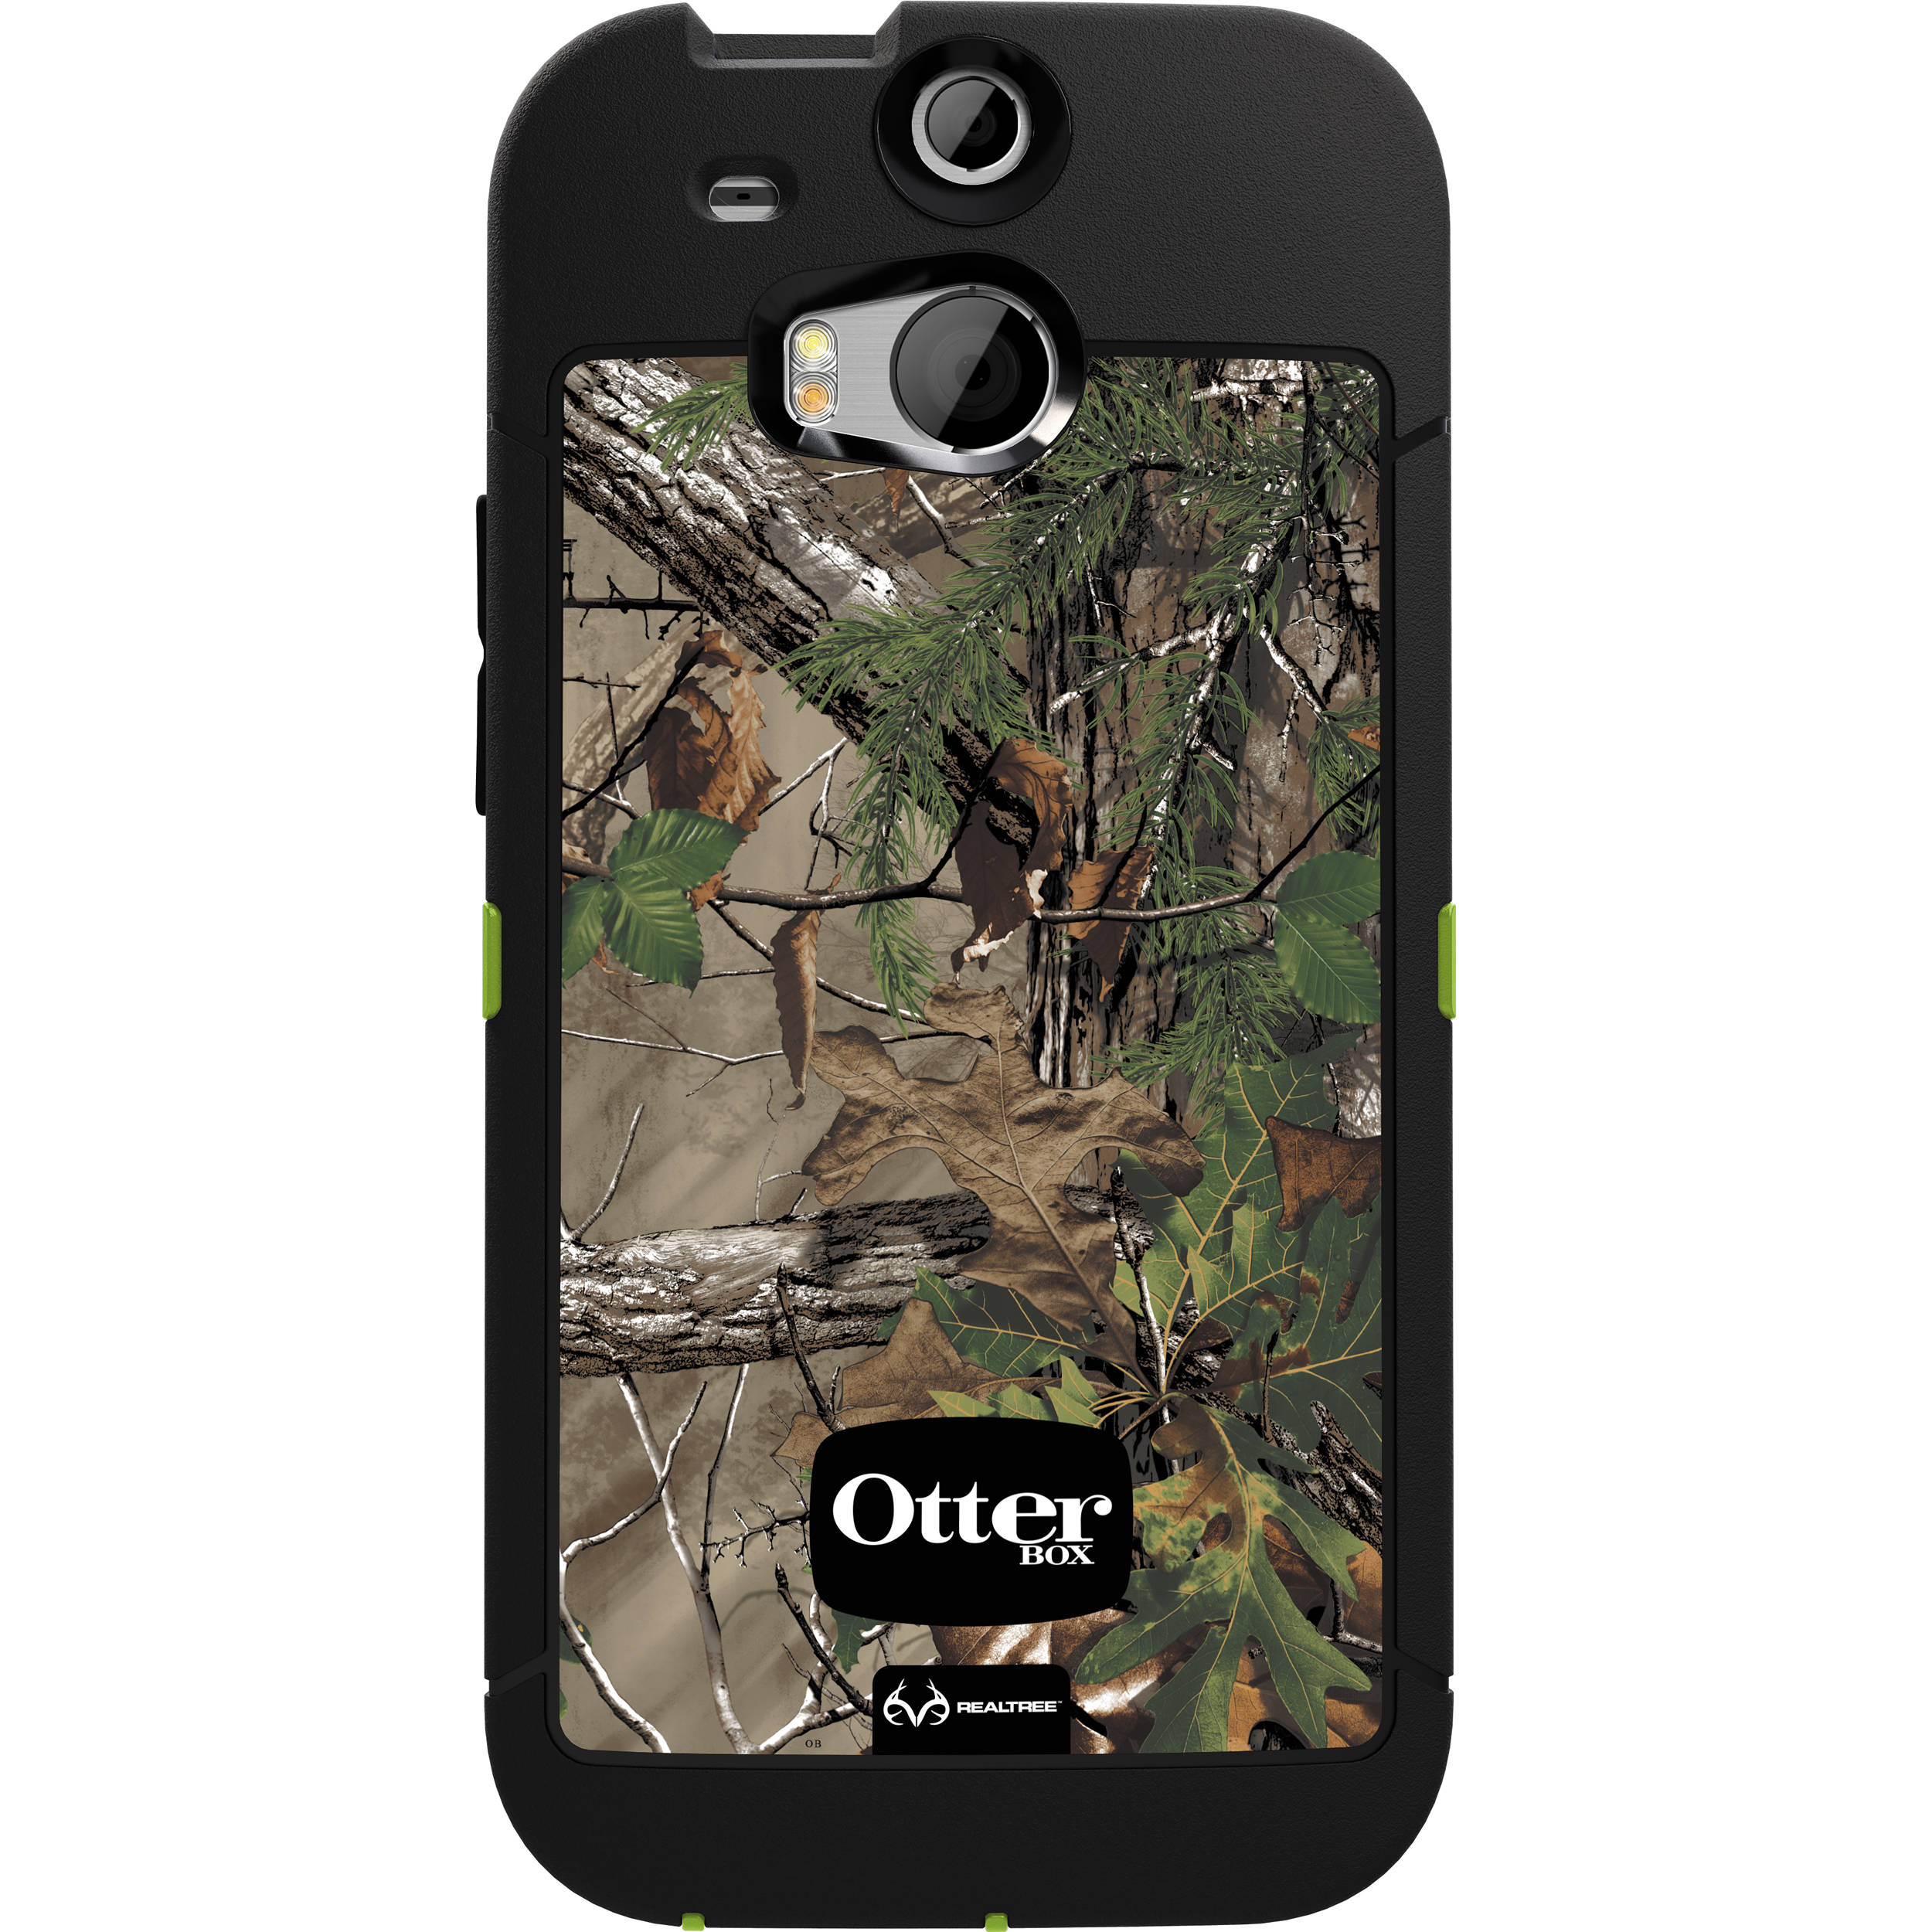 otter_box_77_39937_defender_case_for_htc